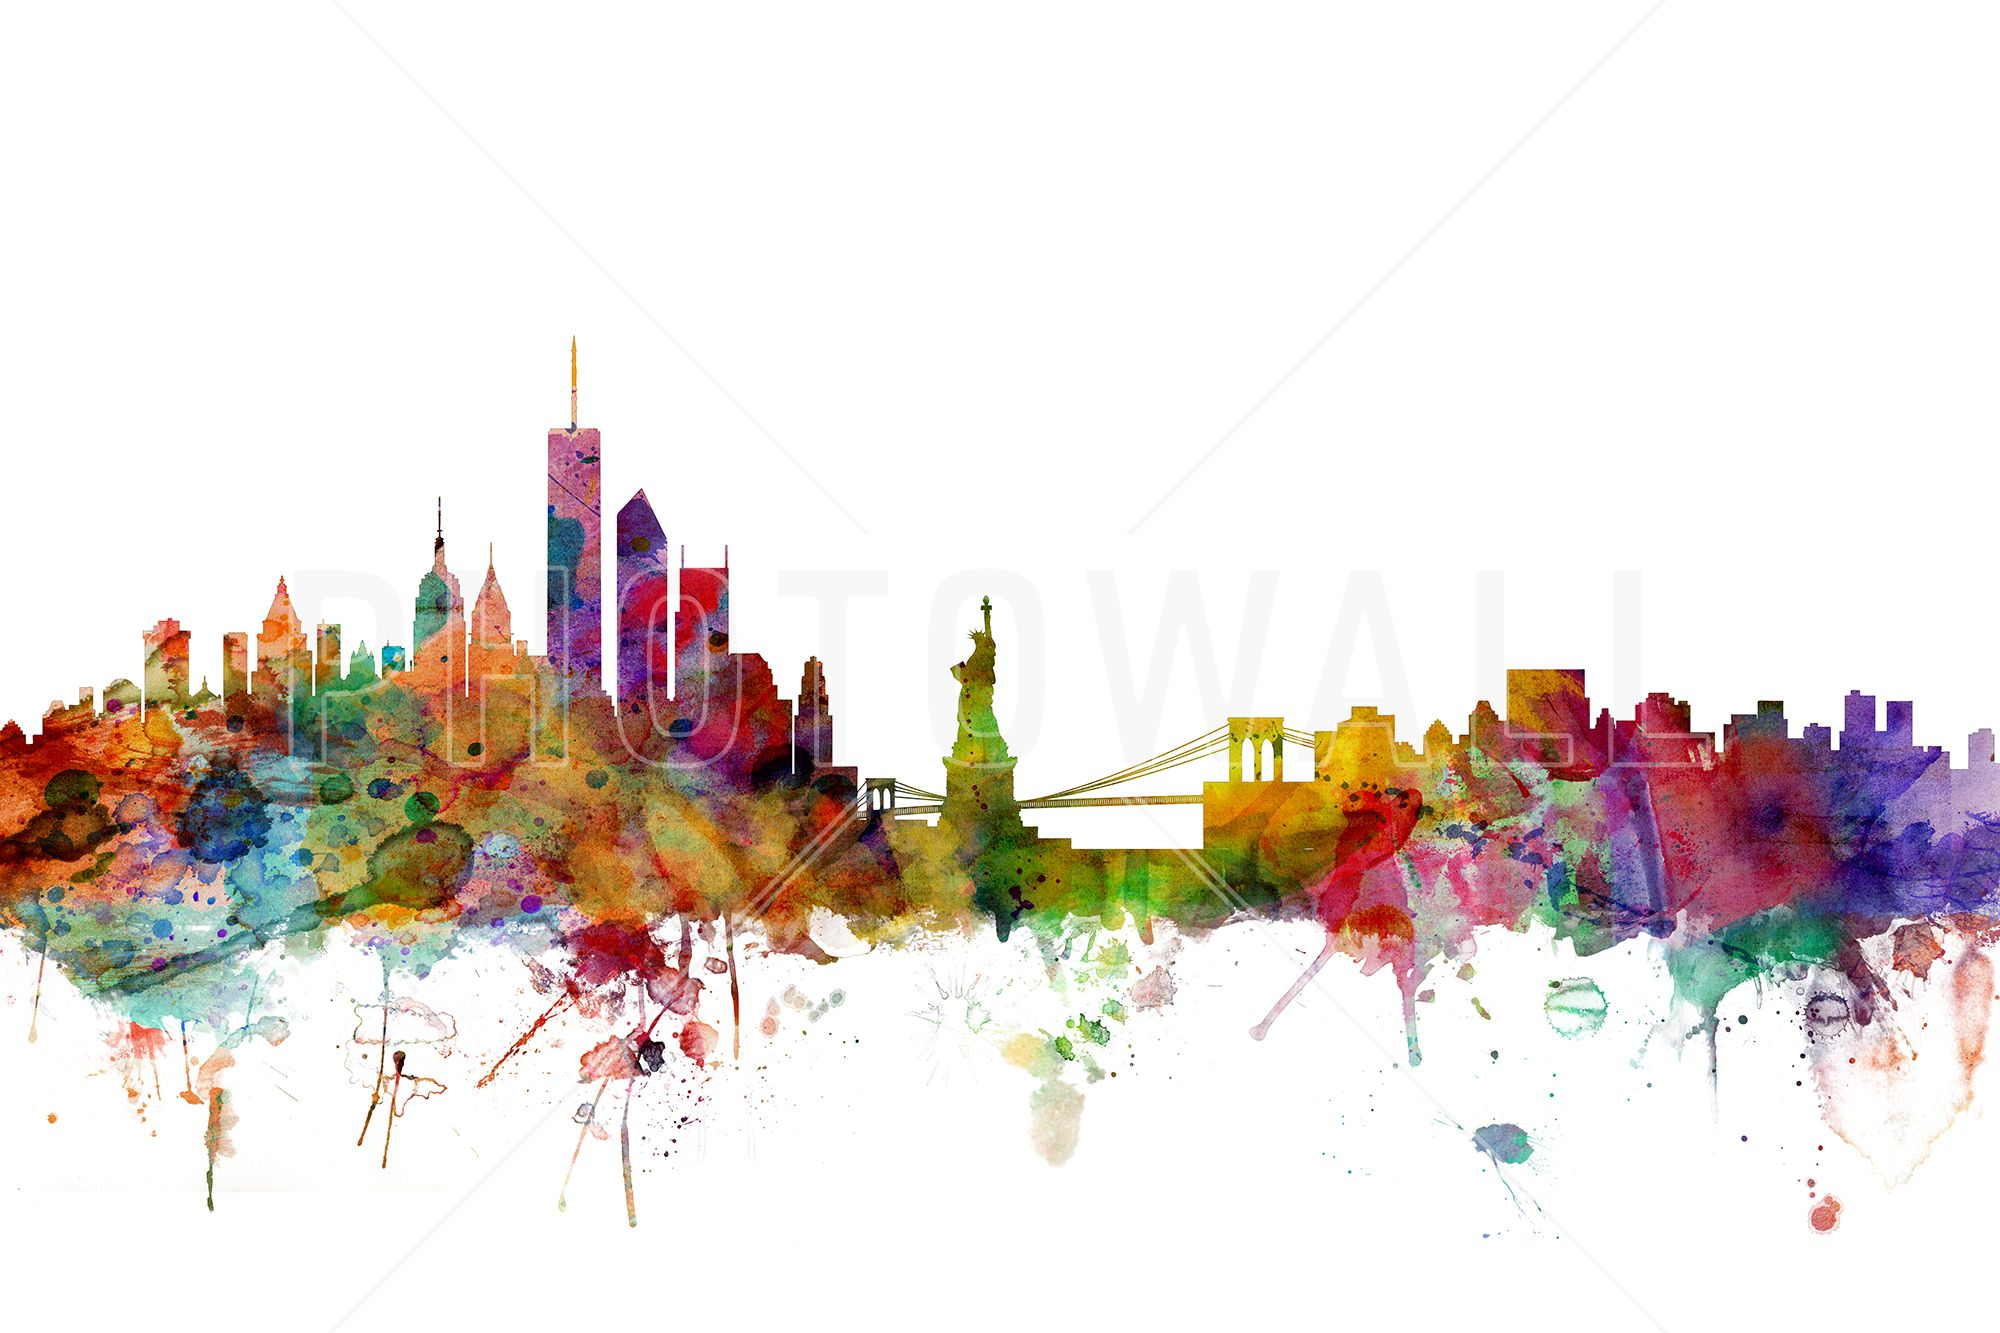 New York Skyline - Fotobehang & Behang - Photowall